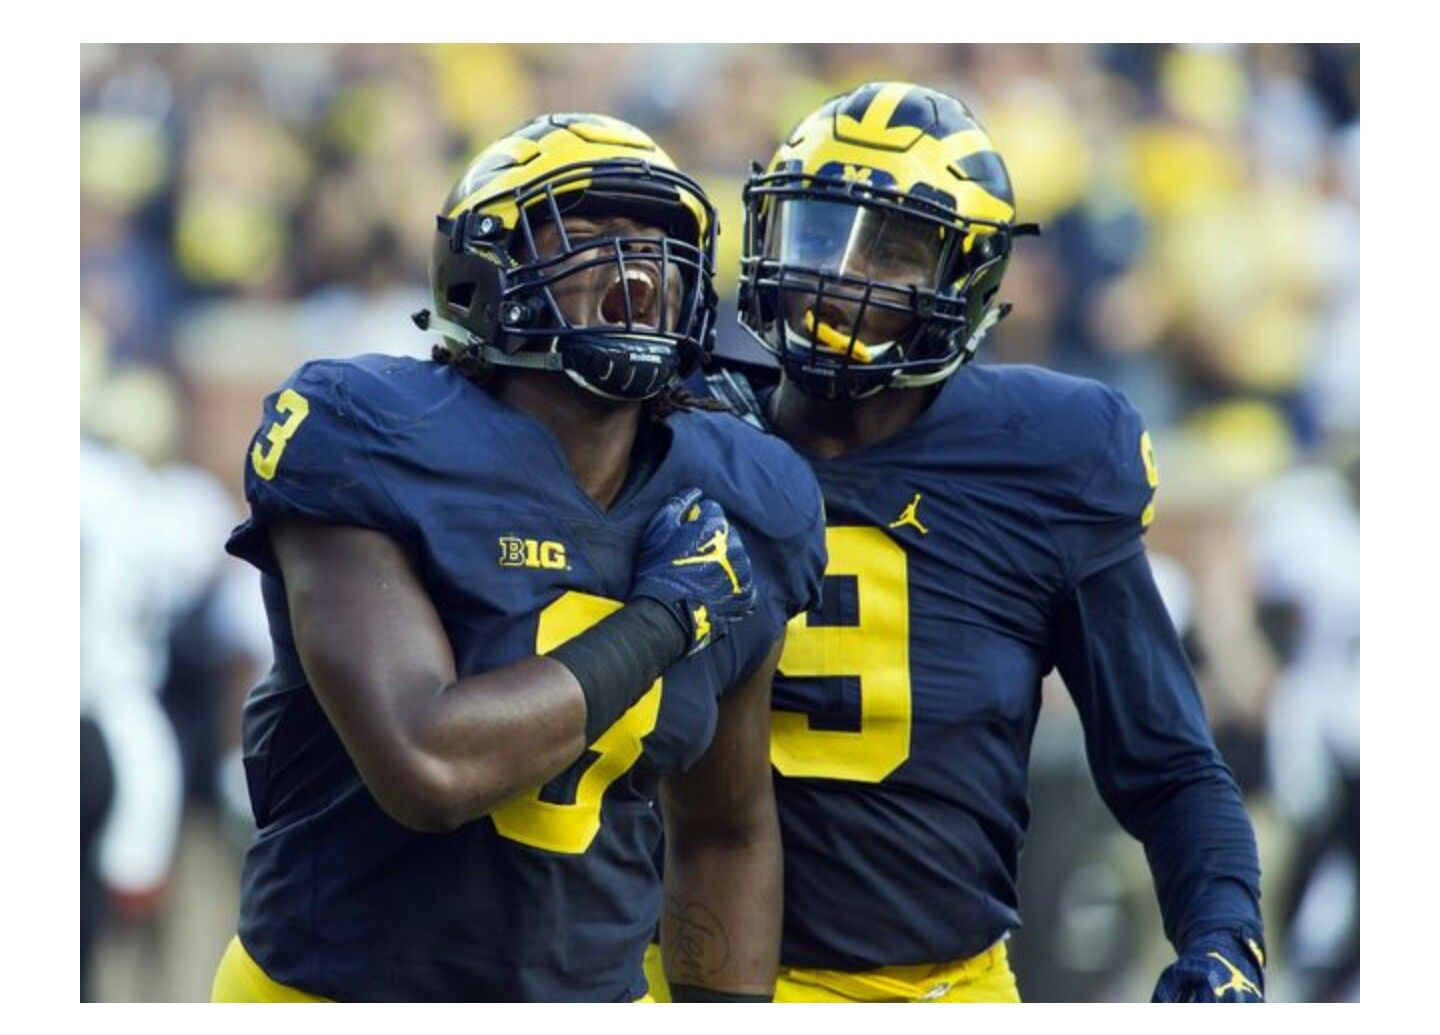 Detroit free press by Michael Johnson on Go Blue